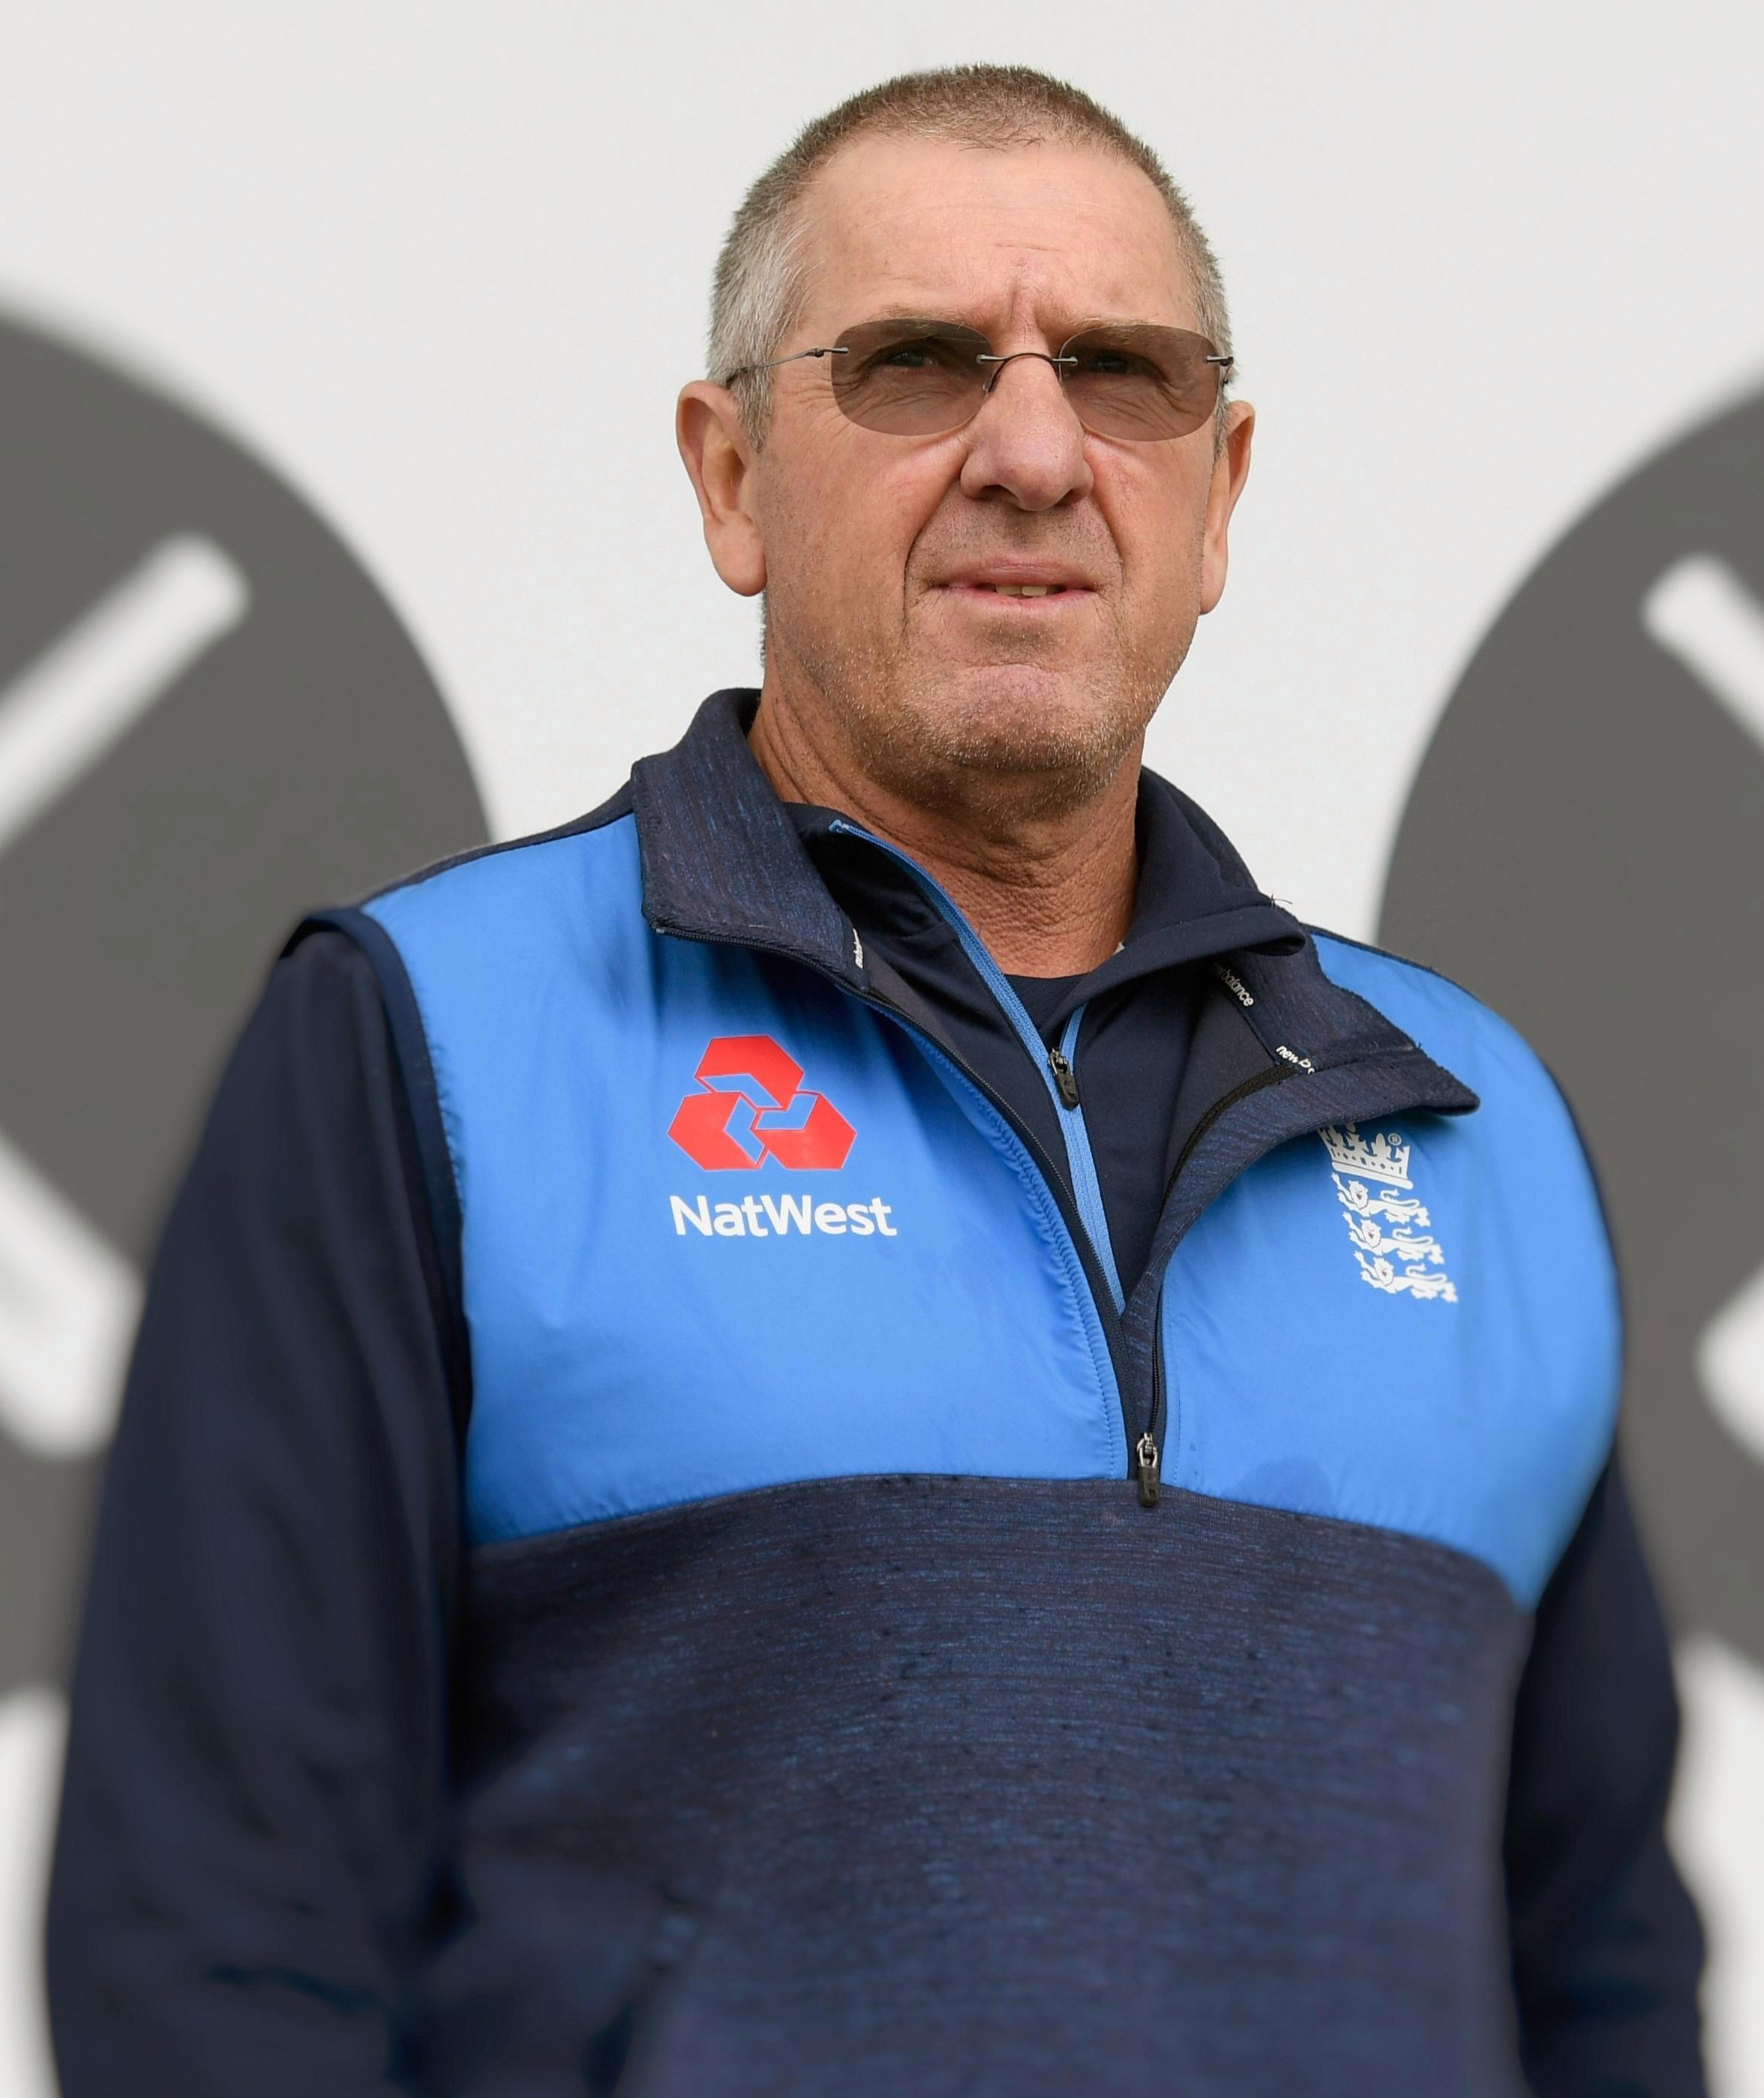 England head coach Trevor Bayliss has struggled with recent results